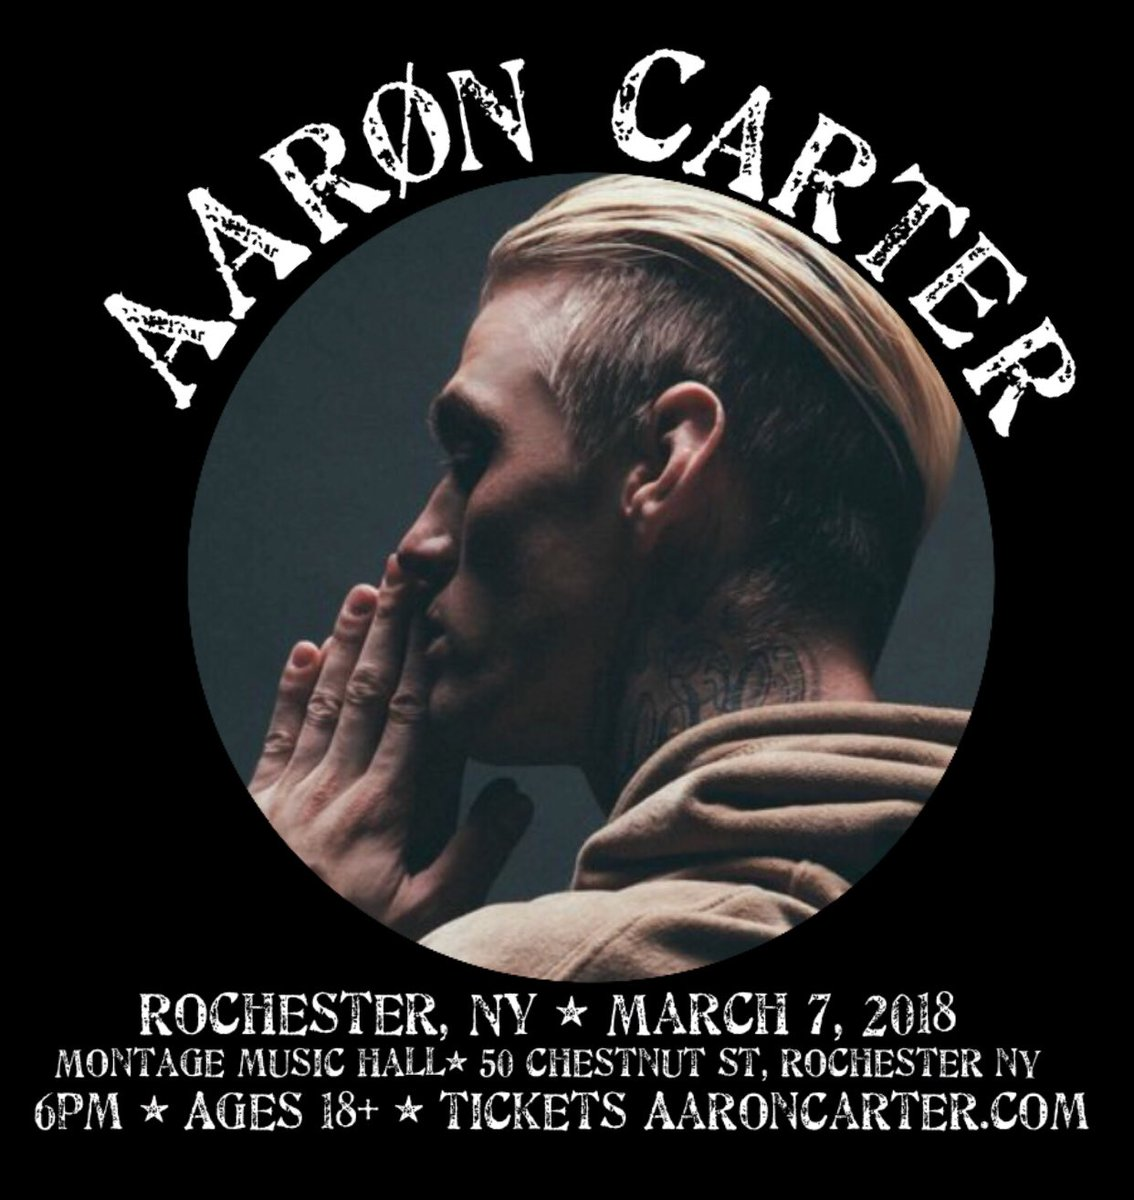 RT @AaronCarter_ST: #ROCHESTER @aaroncarter will be there March 7! Tickets at https://t.co/viWyIaQ8GB #LøVëtour2018 https://t.co/iMuU8Kdvve